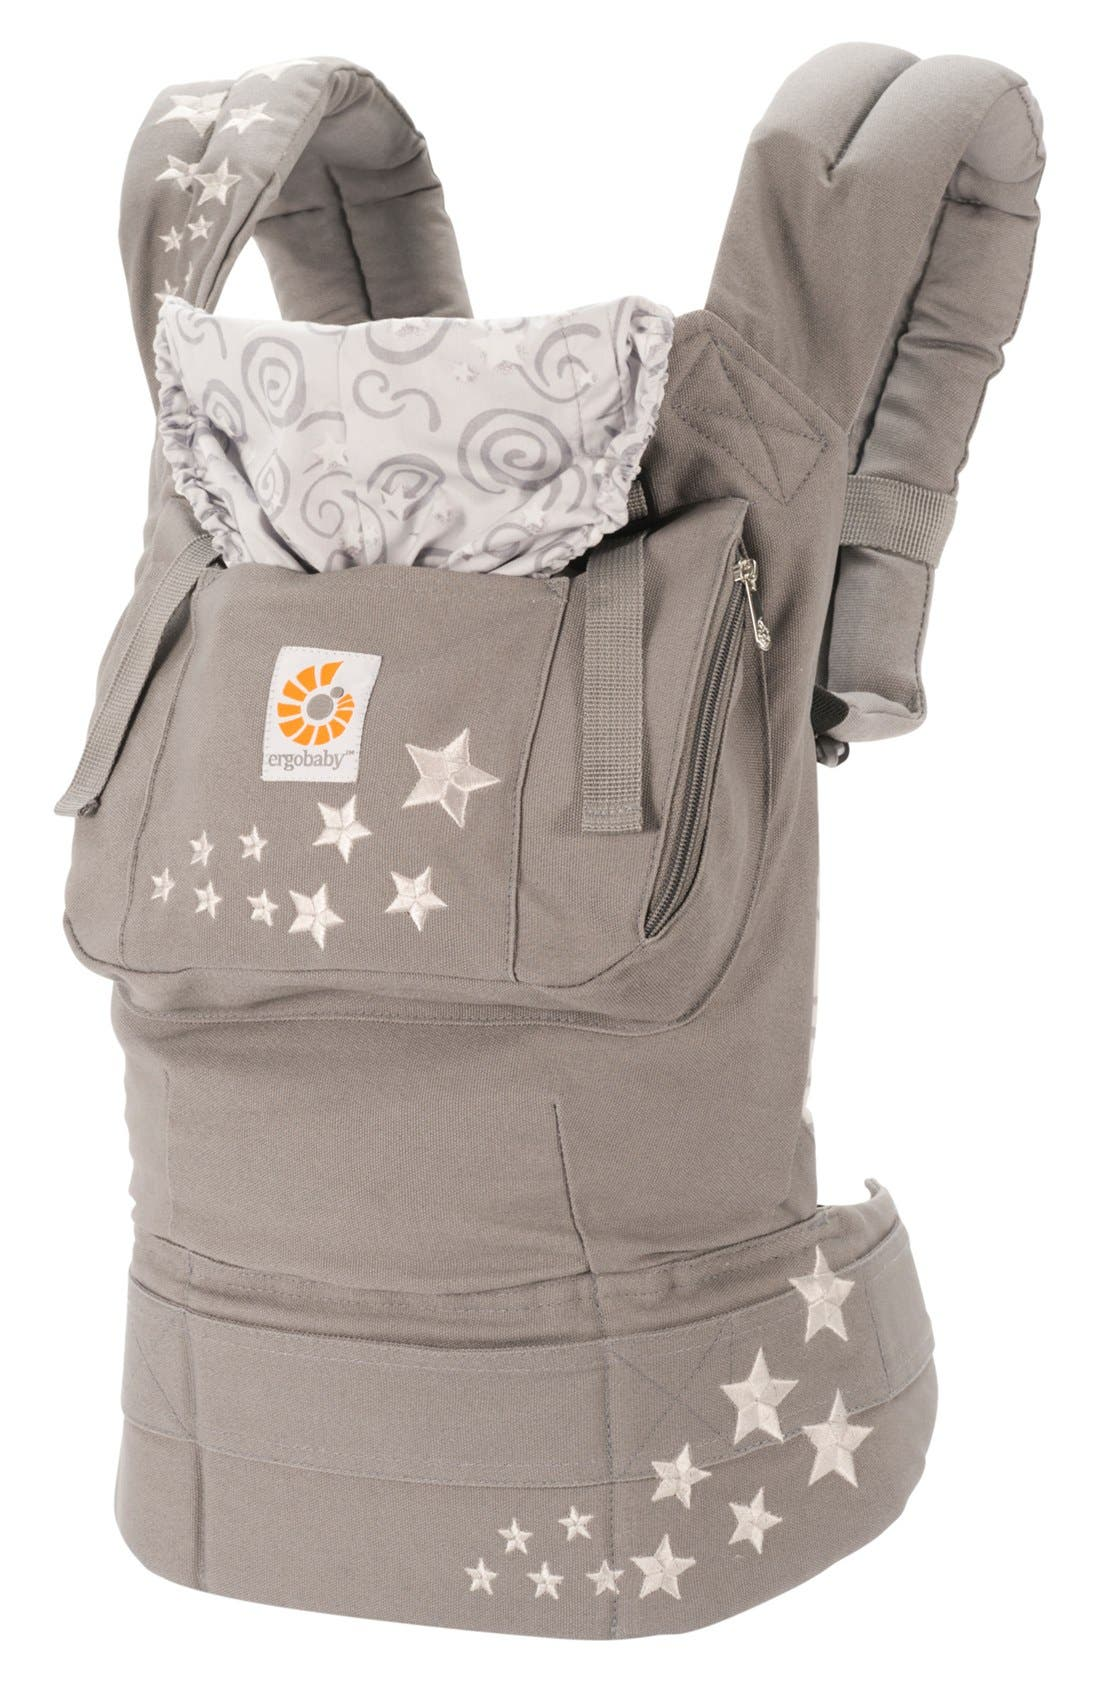 Infant Ergobaby Baby Carrier